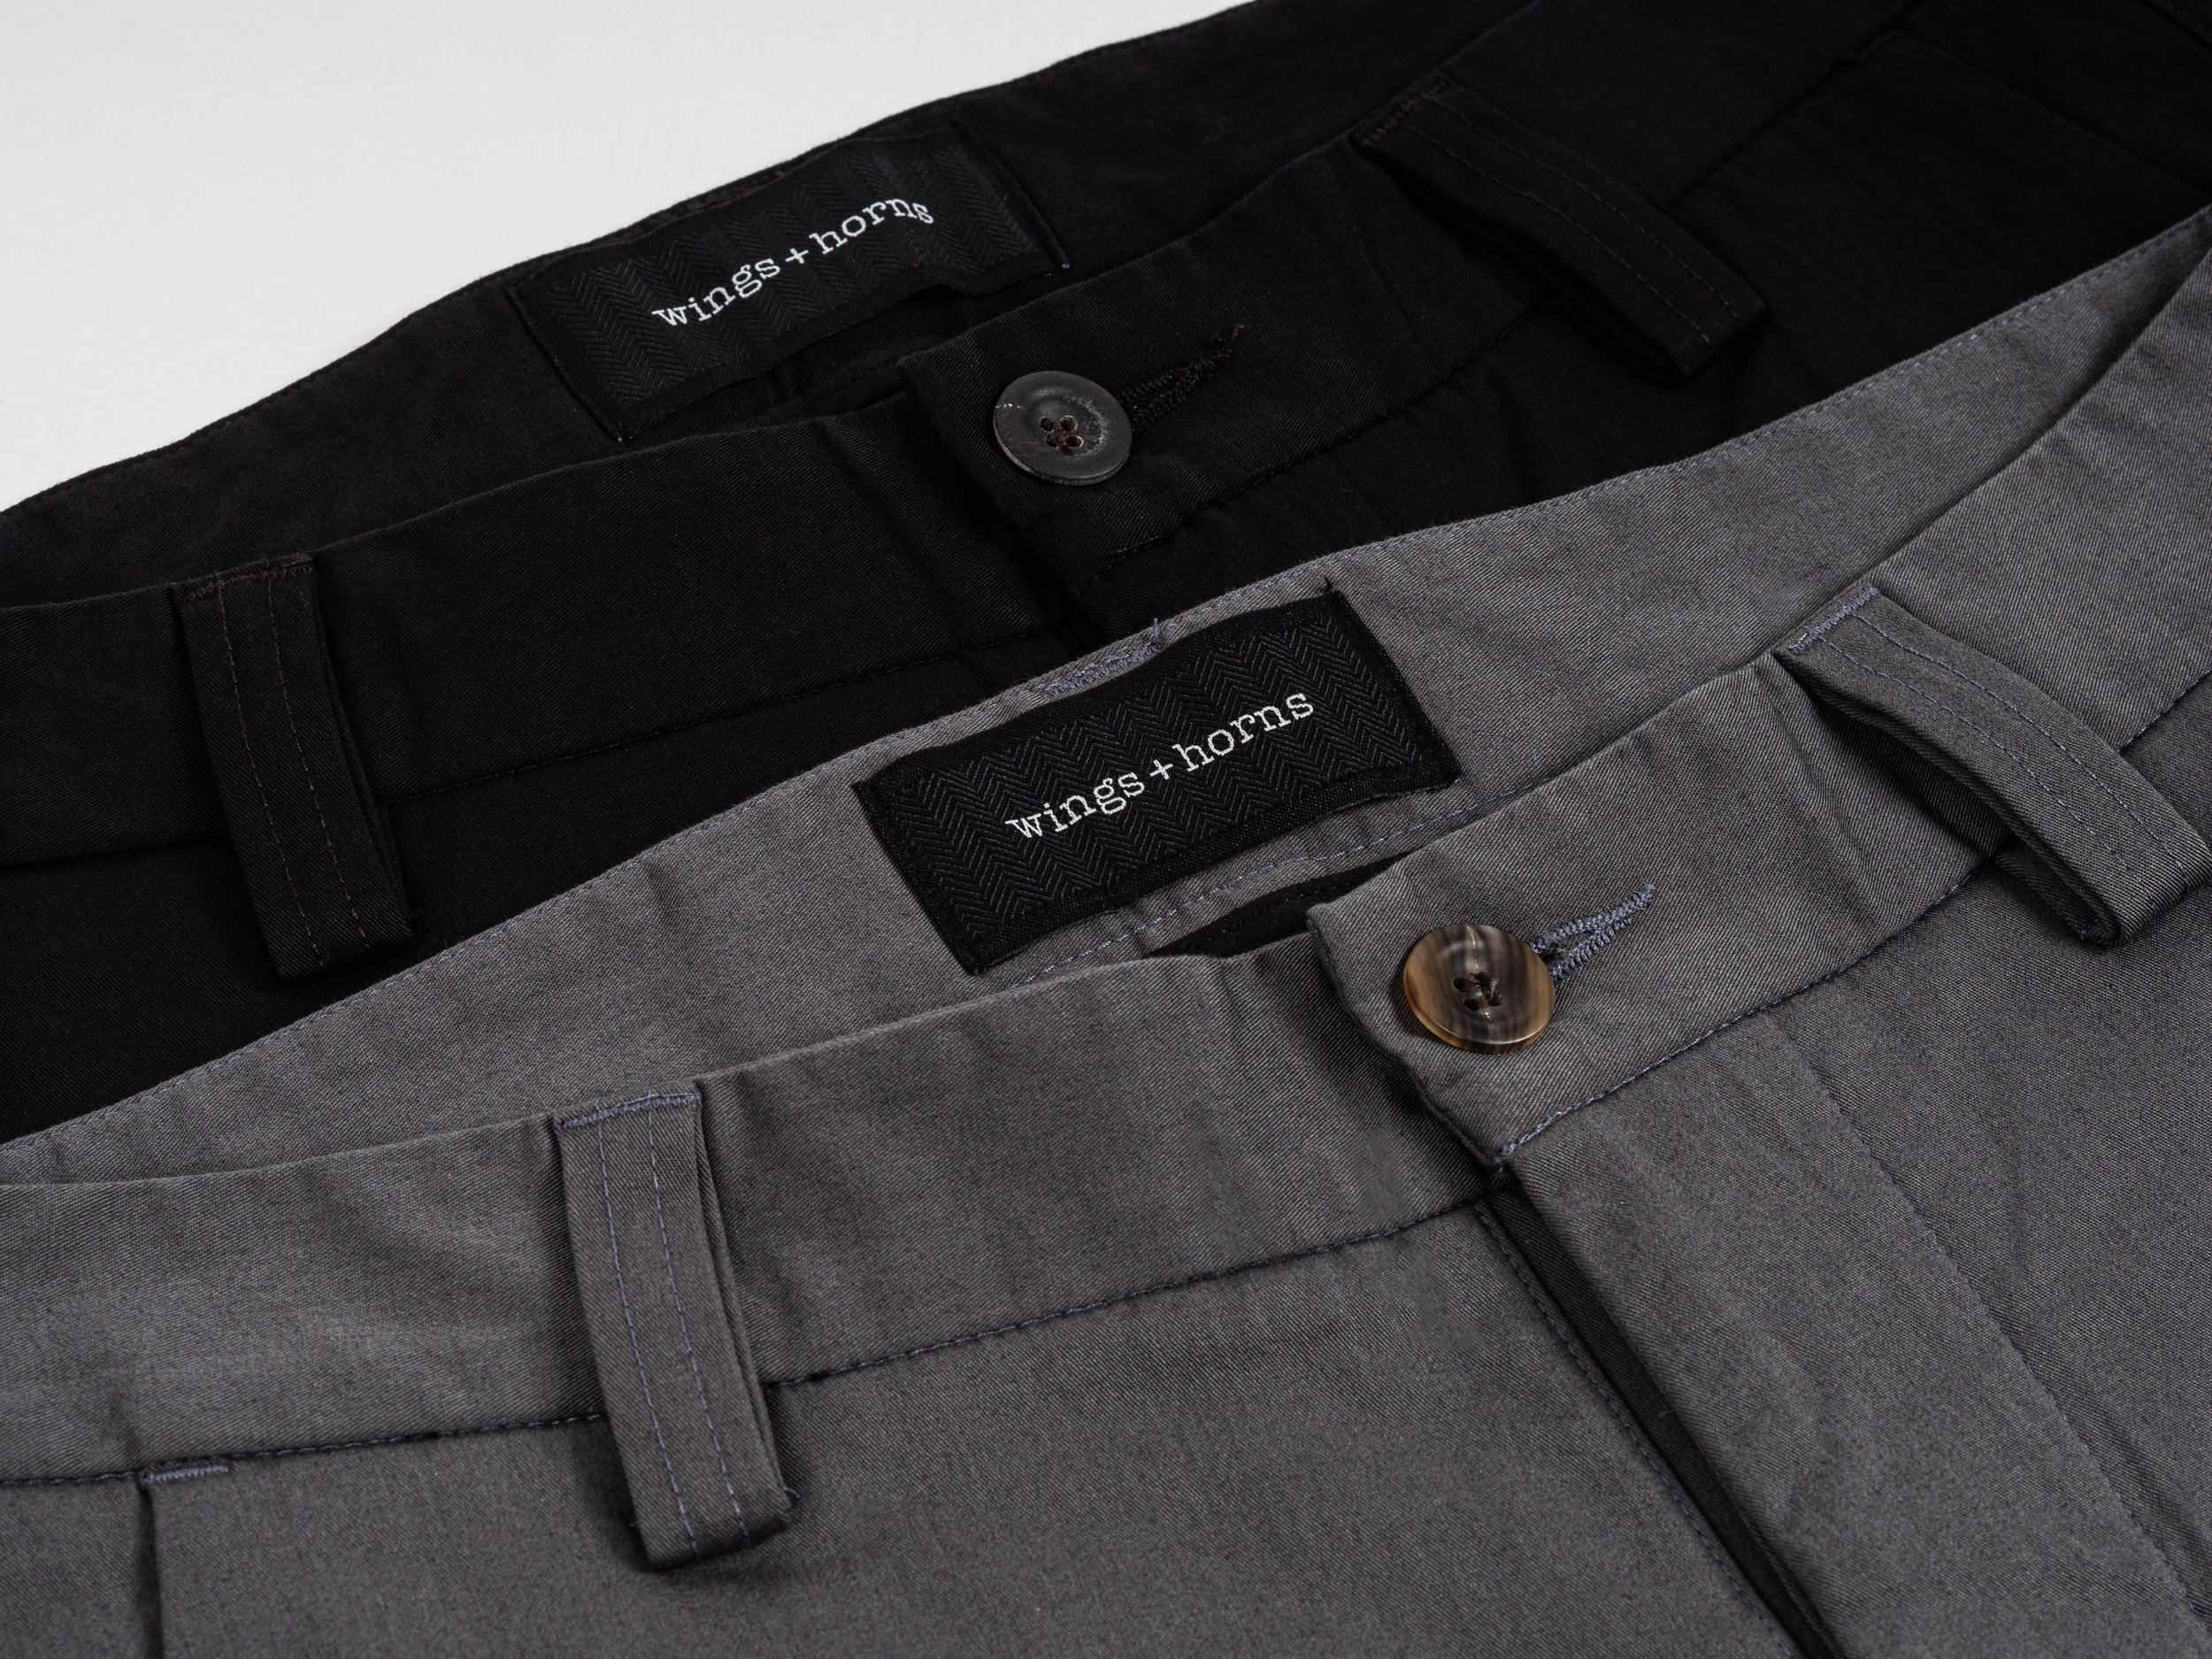 """Wings + Horns Cordura Tokyo Pants - This seasonal take on wings+horns' classic chino is made with a tightly woven Japanese Cordura® nylon, which keeps the pants lightweight, weather resistant, and hard wearing. The """"Tokyo"""" fit features a long rise with relaxed thighs, and a sharply tapered lower leg. The Cordura® Tokyo Pant is finished with doubled belt loops, horn button fly, rear welt pockets, and front slant pockets."""